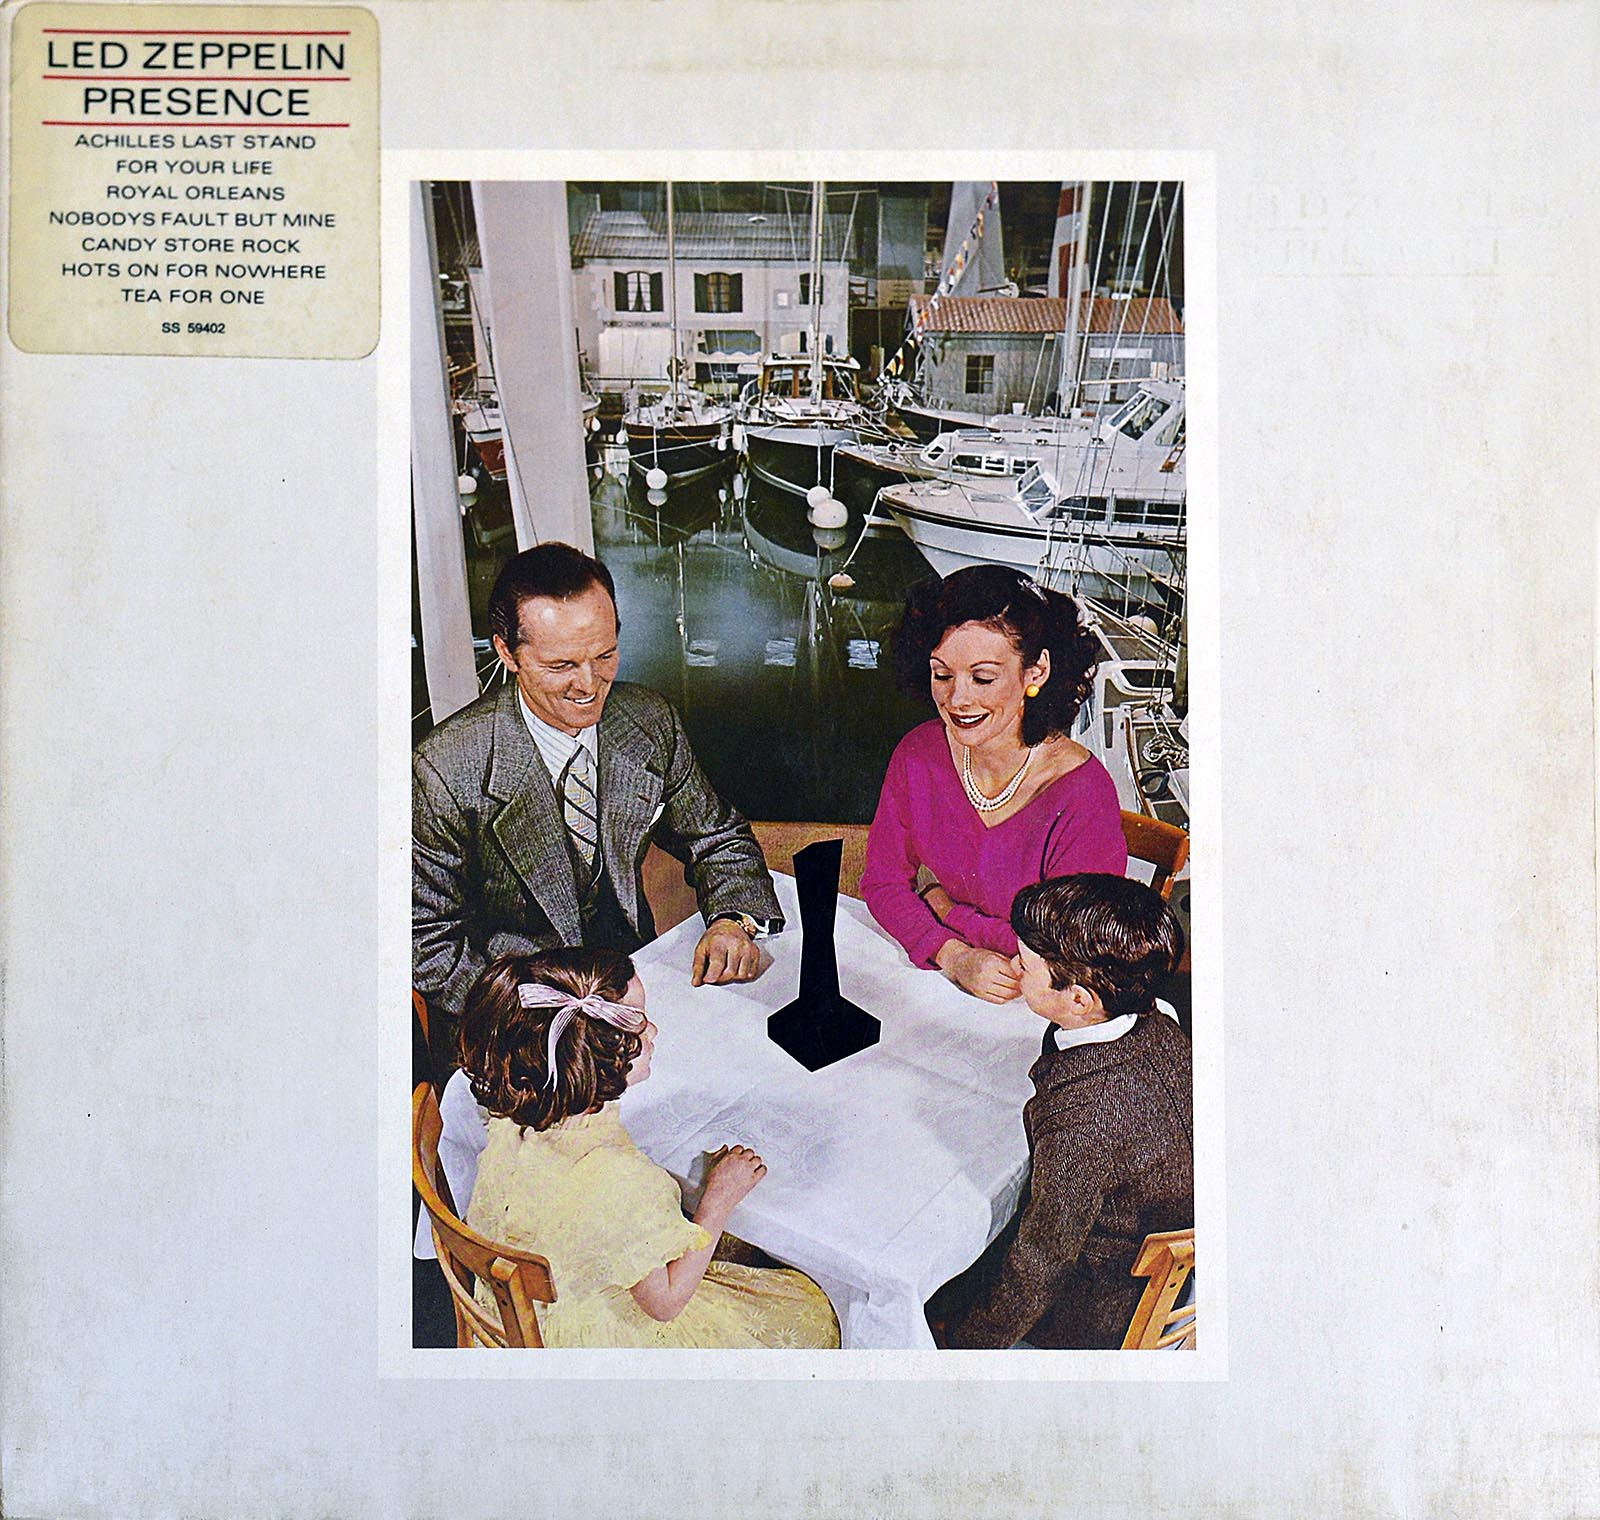 Album Front Cover Photo of LED ZEPPELIN - Presence